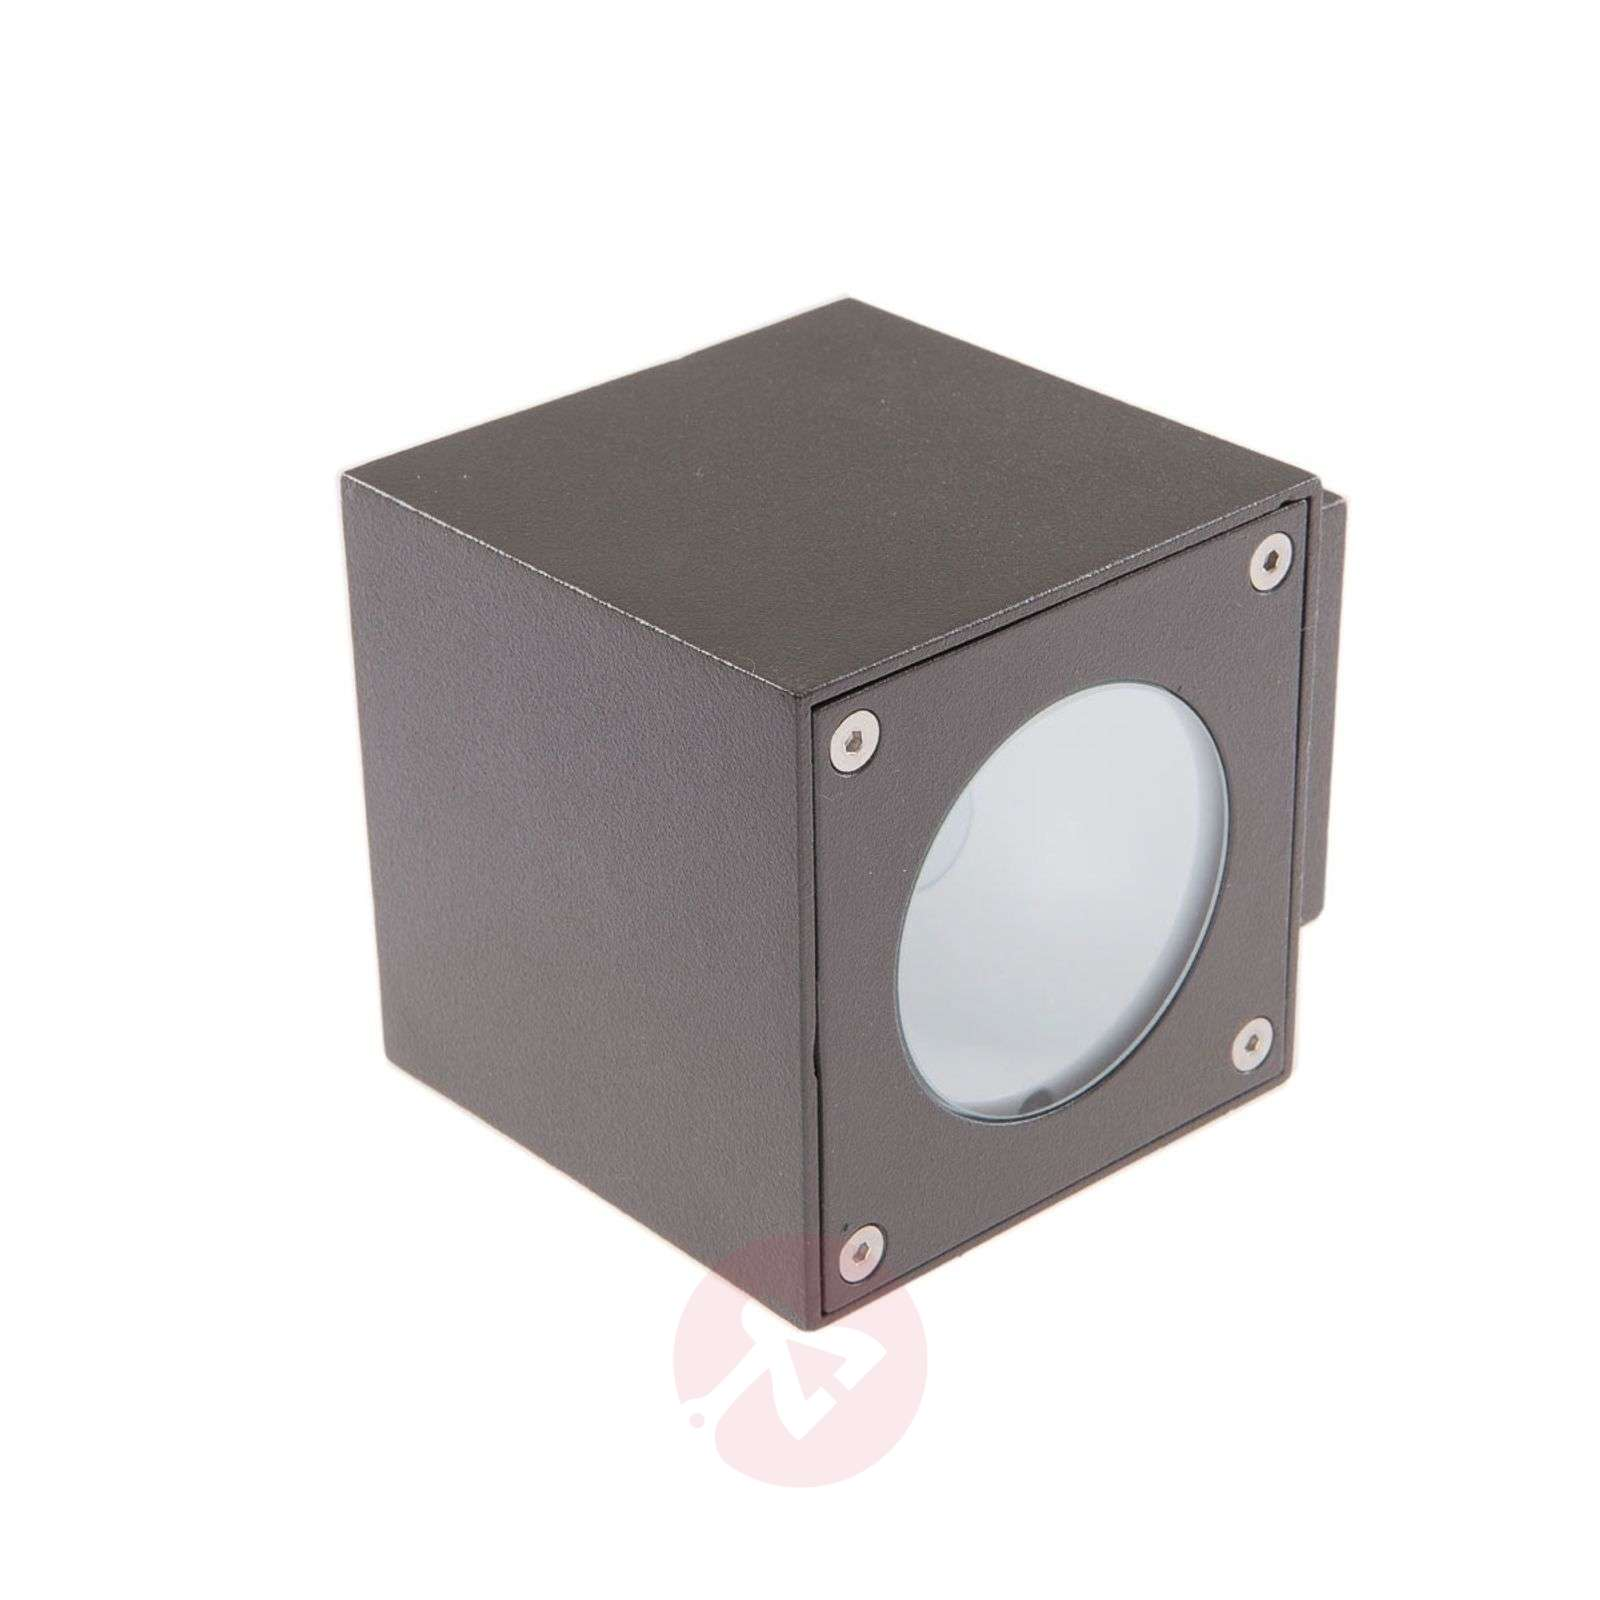 Jarno LED outdoor wall light, graphite-9616007-01